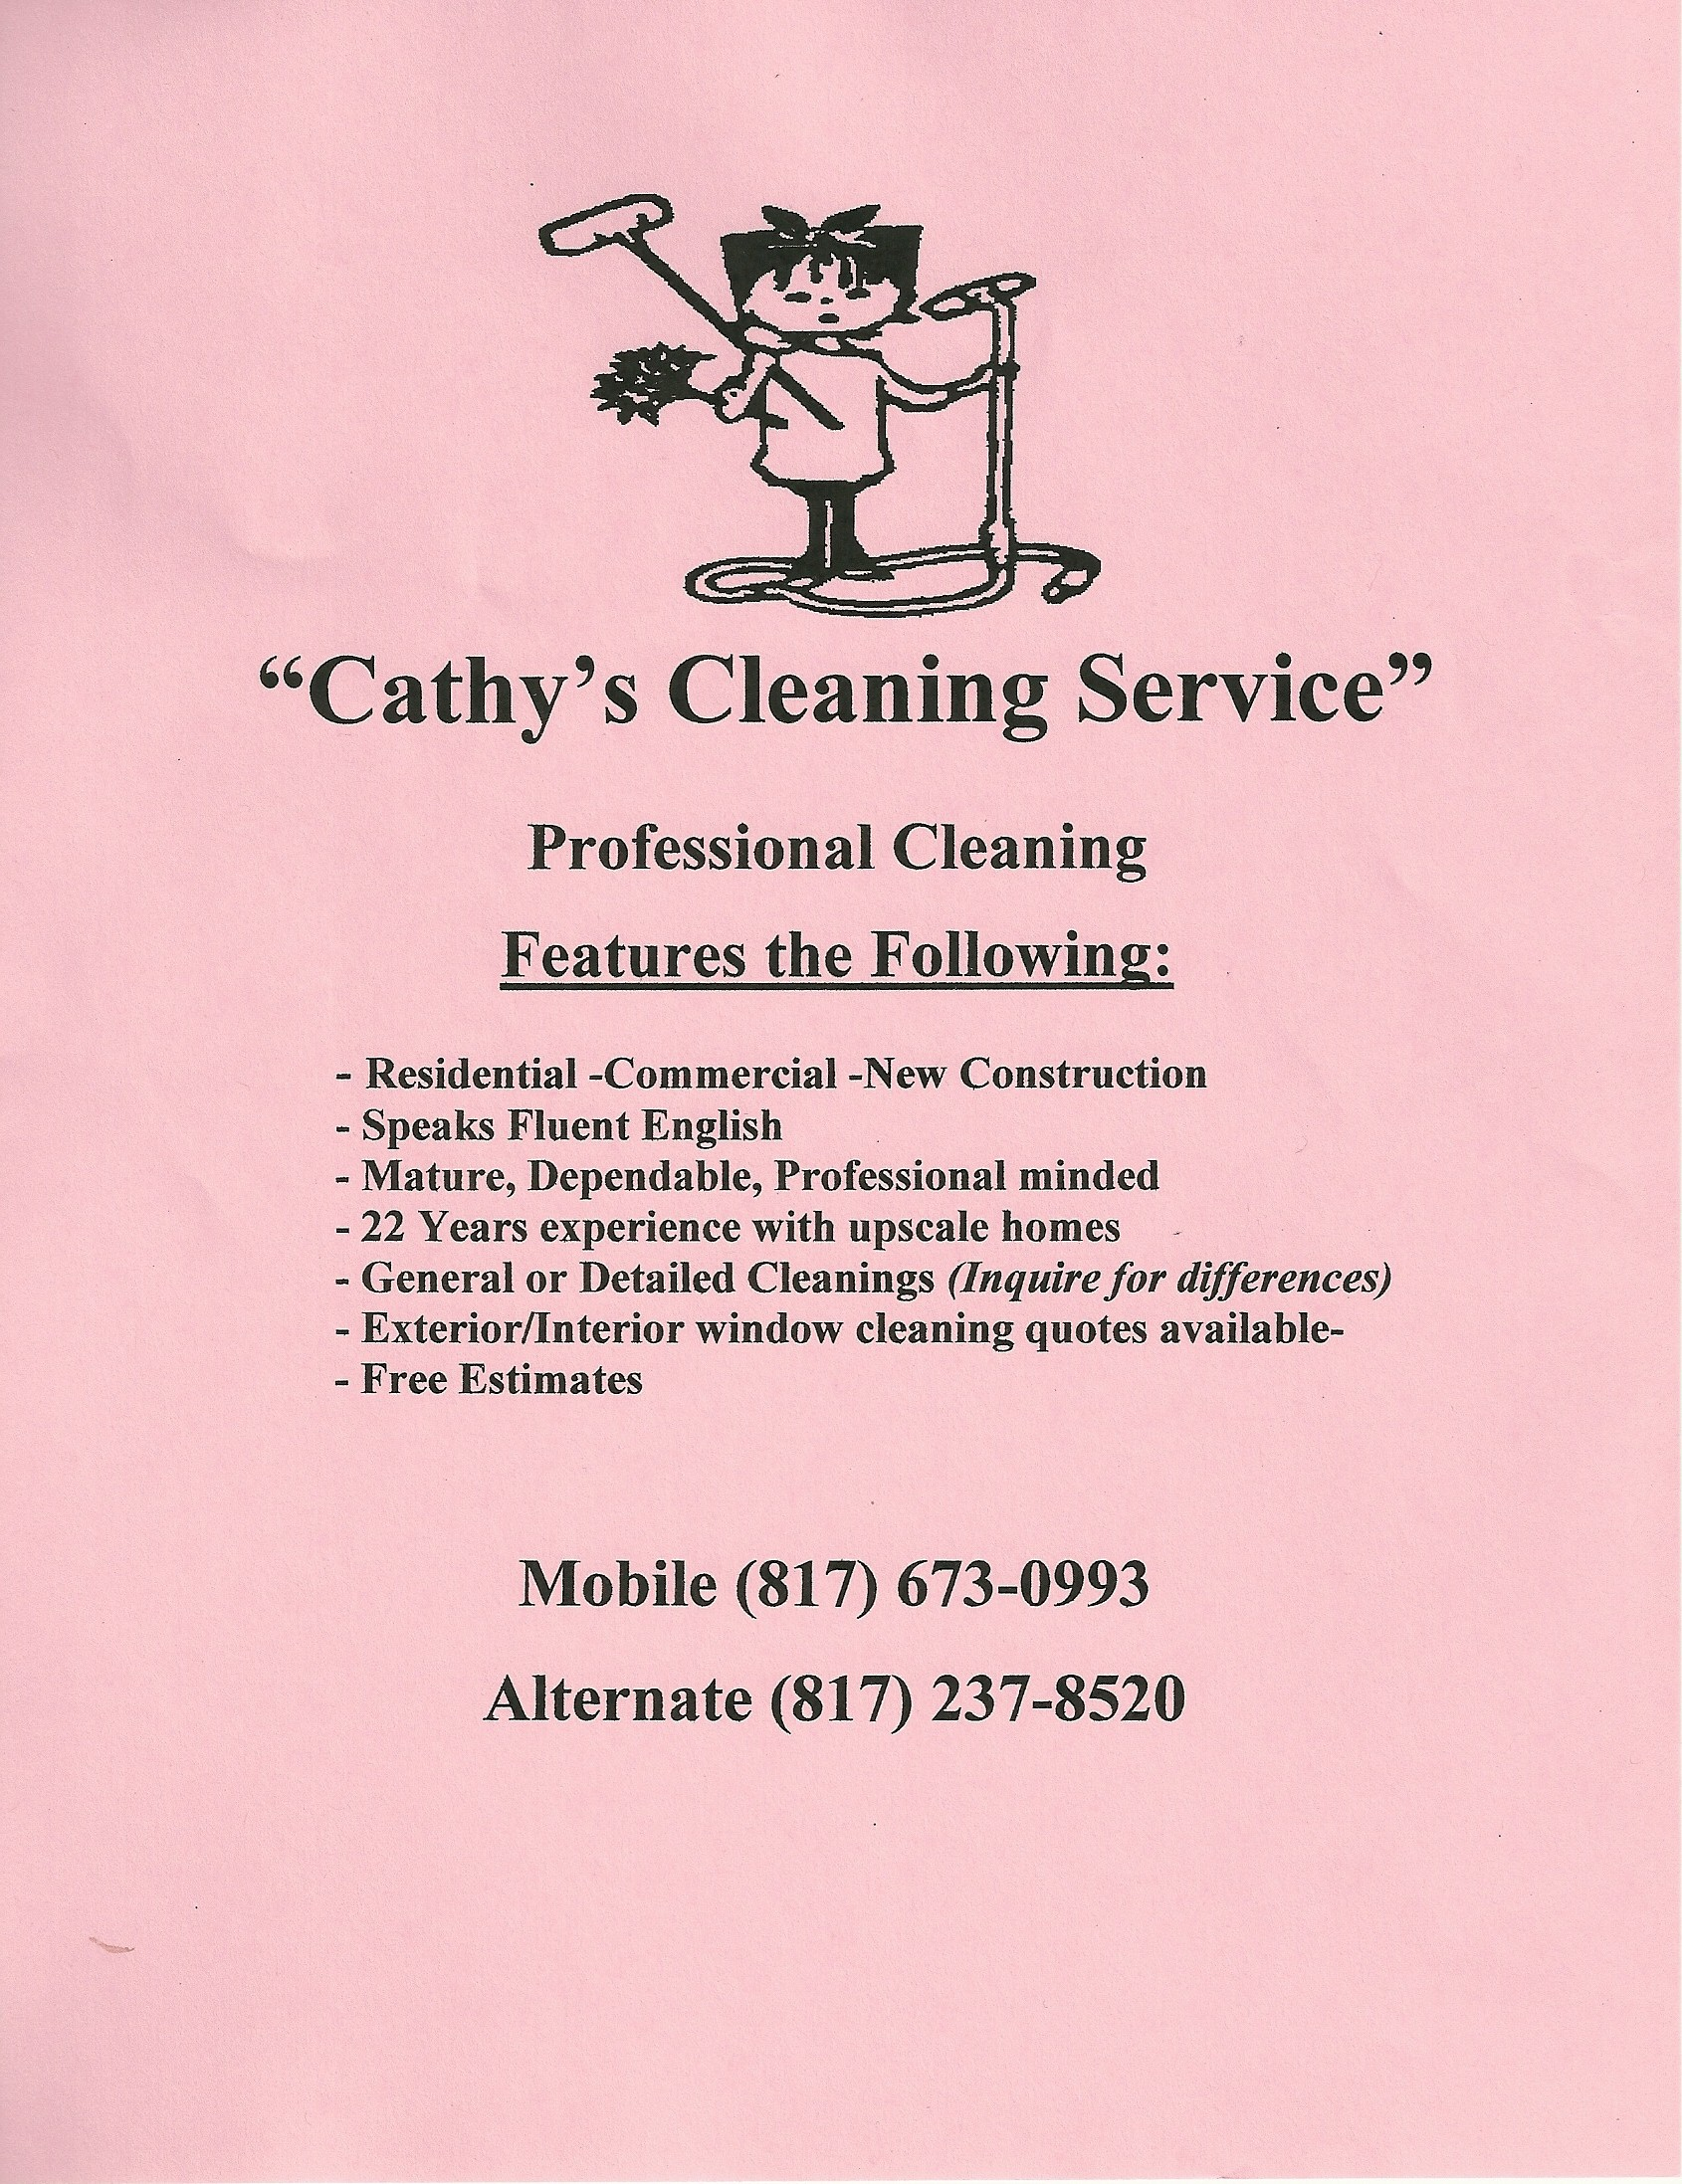 1427697268-Cathys-Cleaning-Service-flyer.jpg